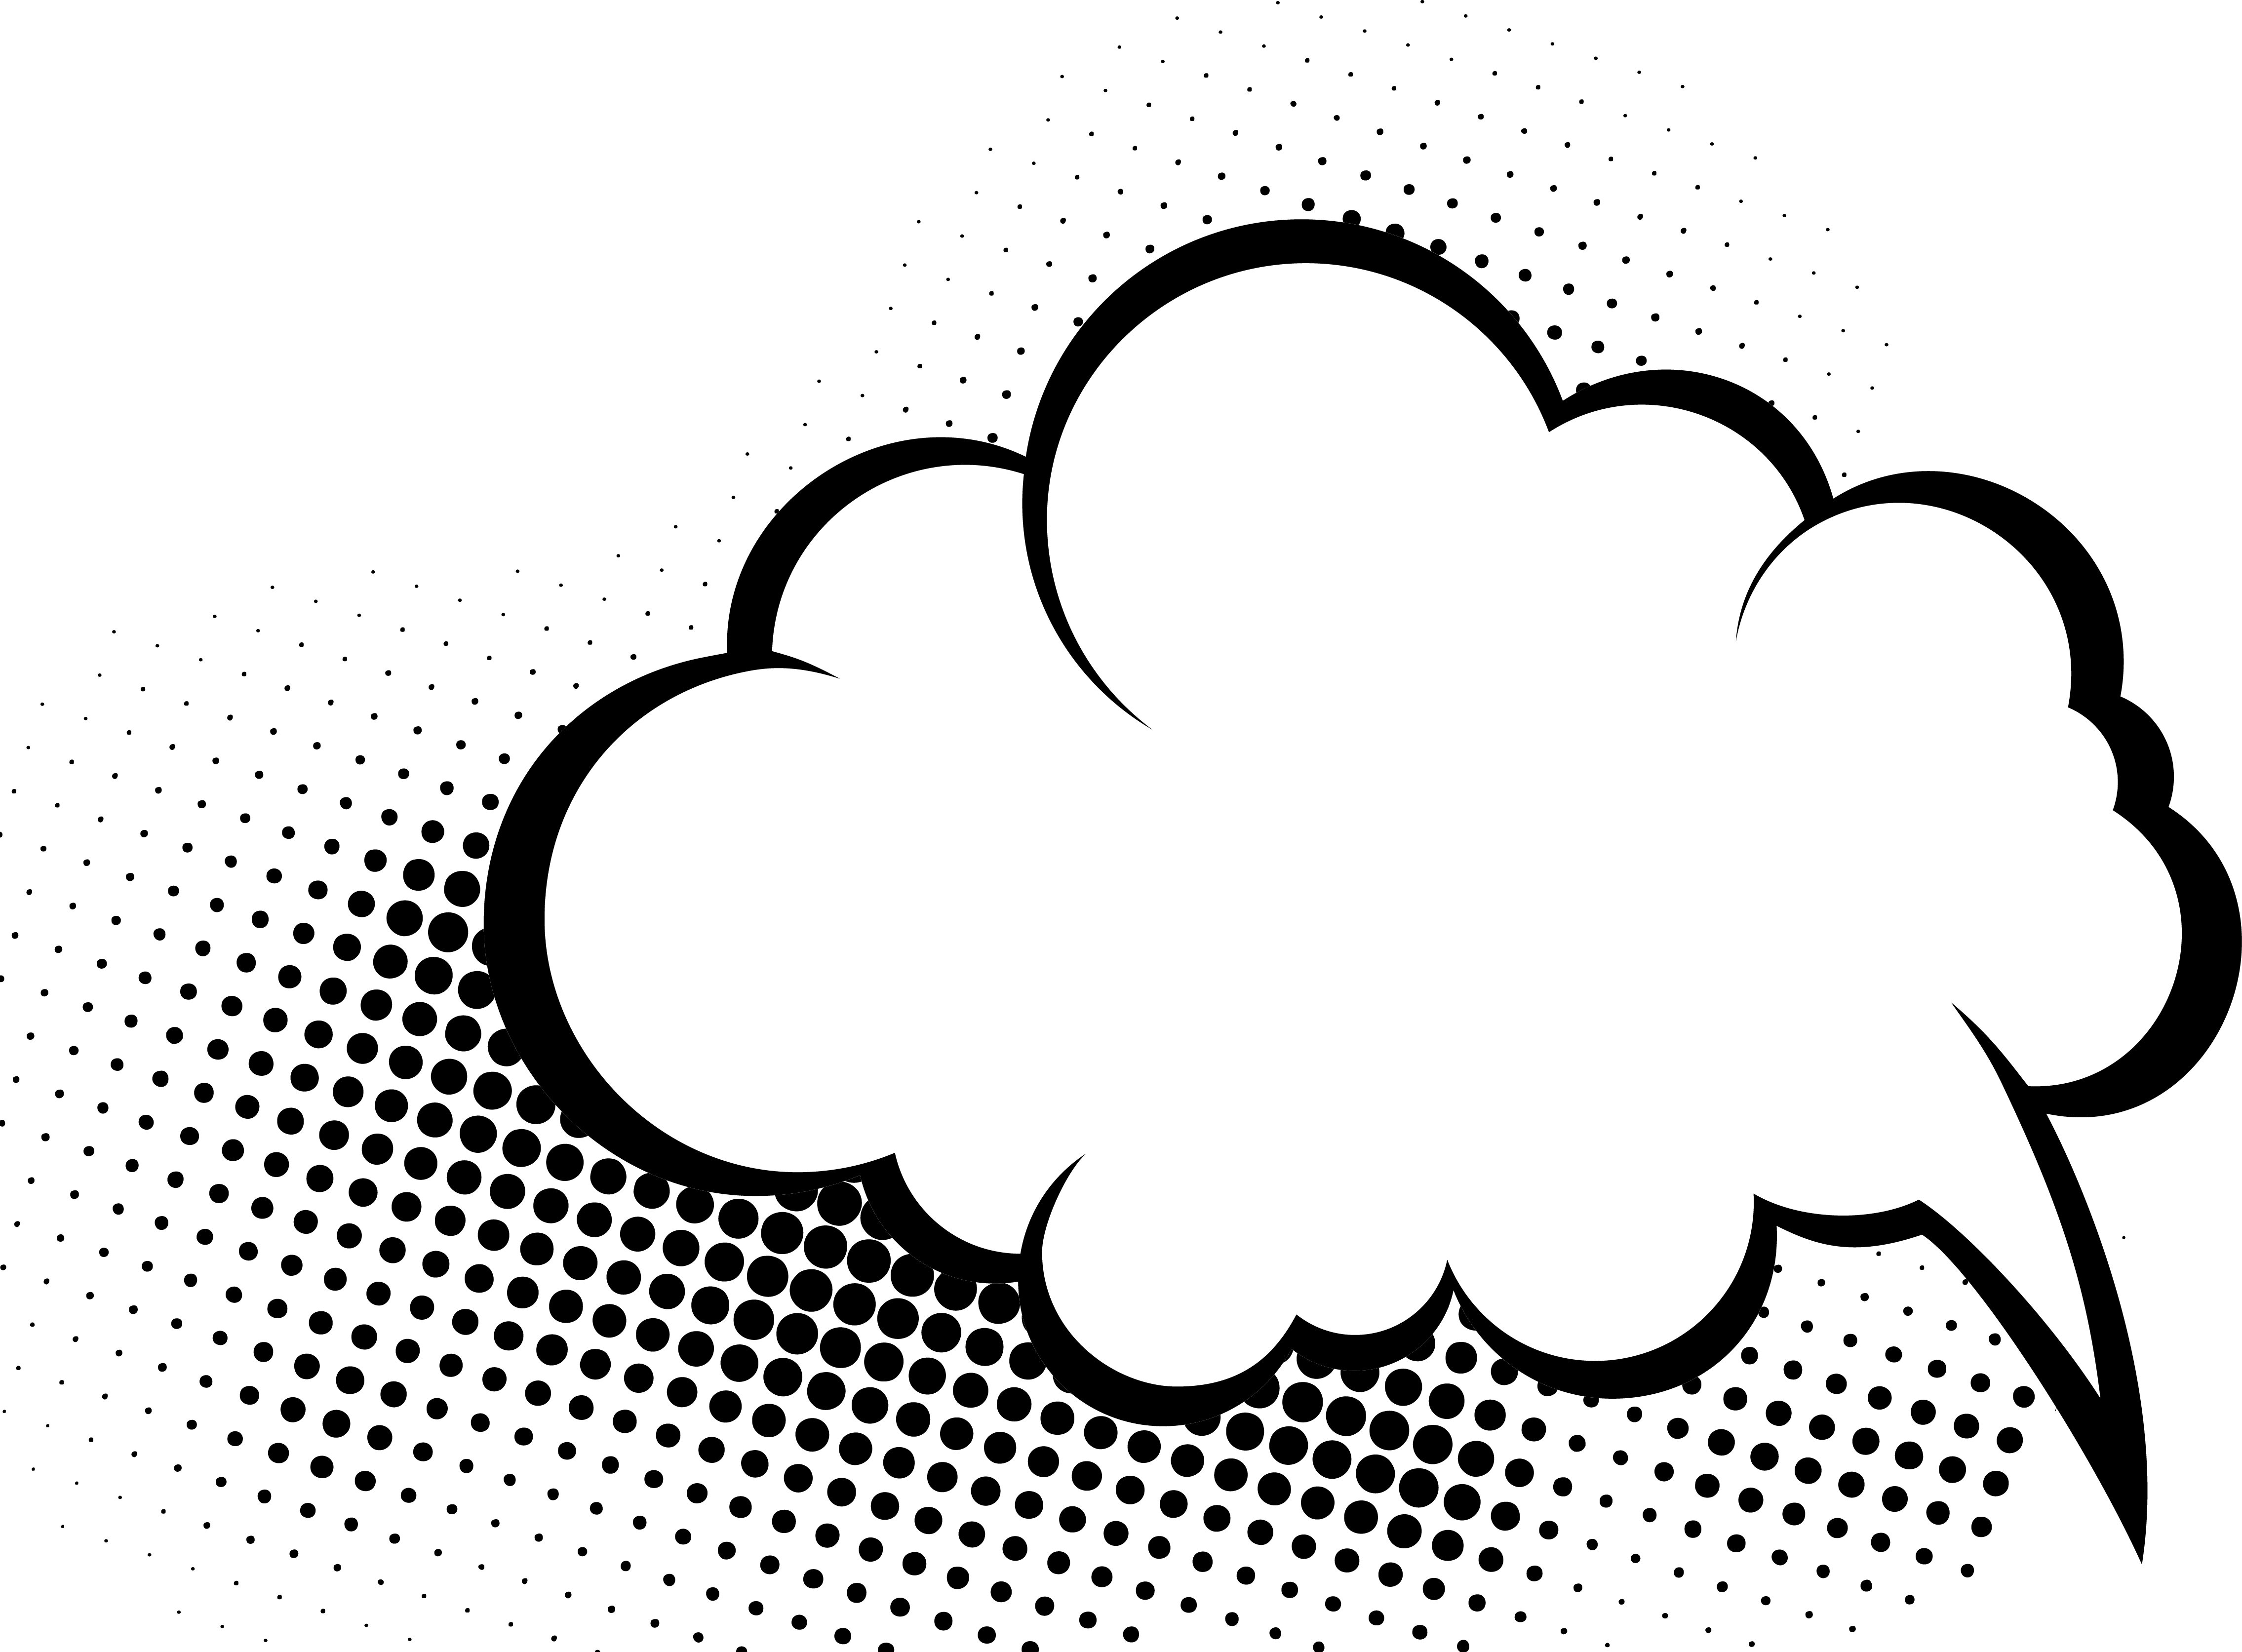 Cloud png cartoon. Comics comic book speech